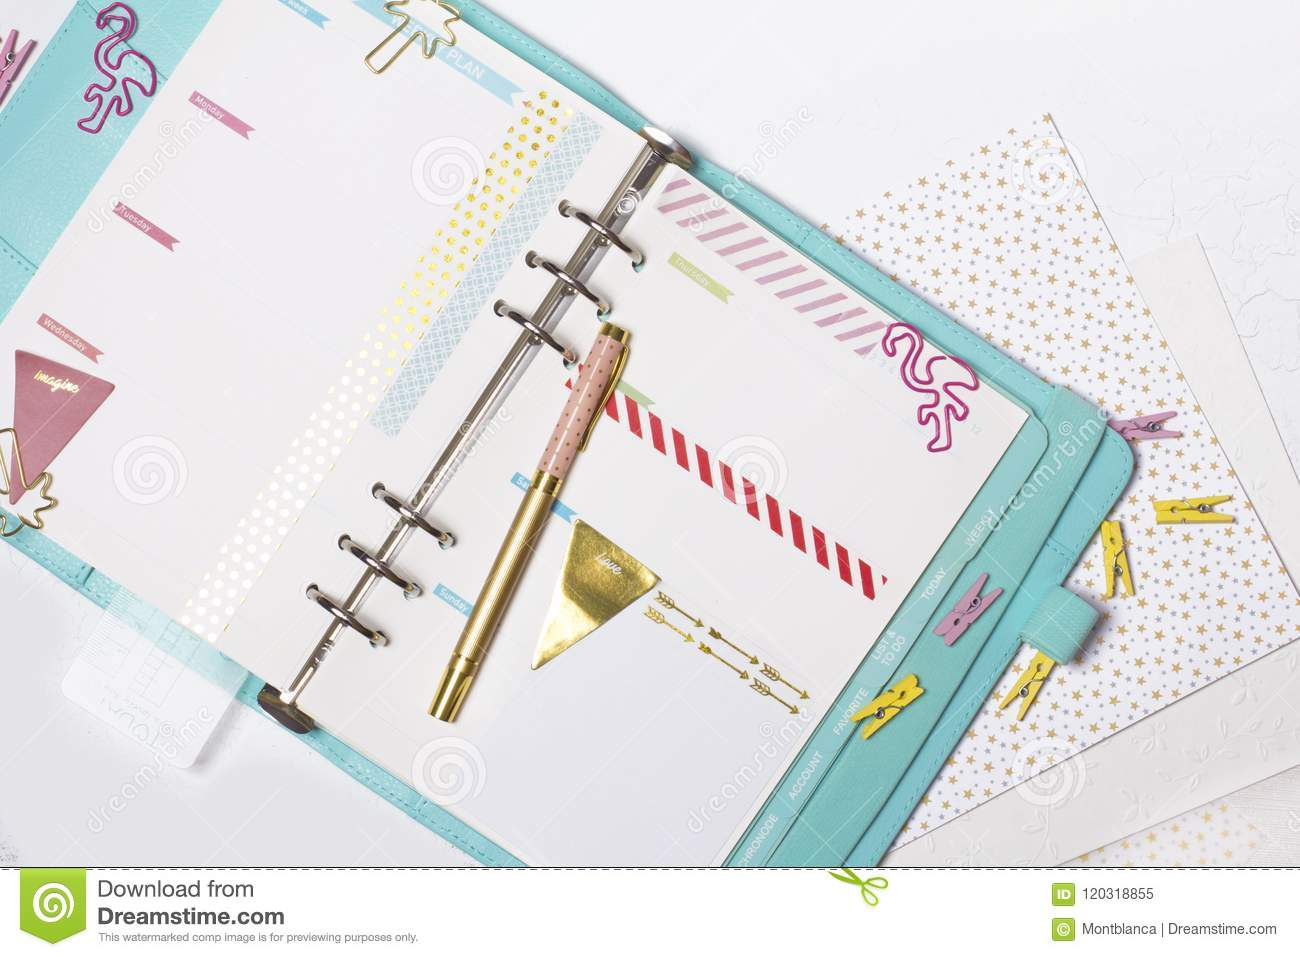 Feminine stationery: colorful paper binder clips palm and flamin